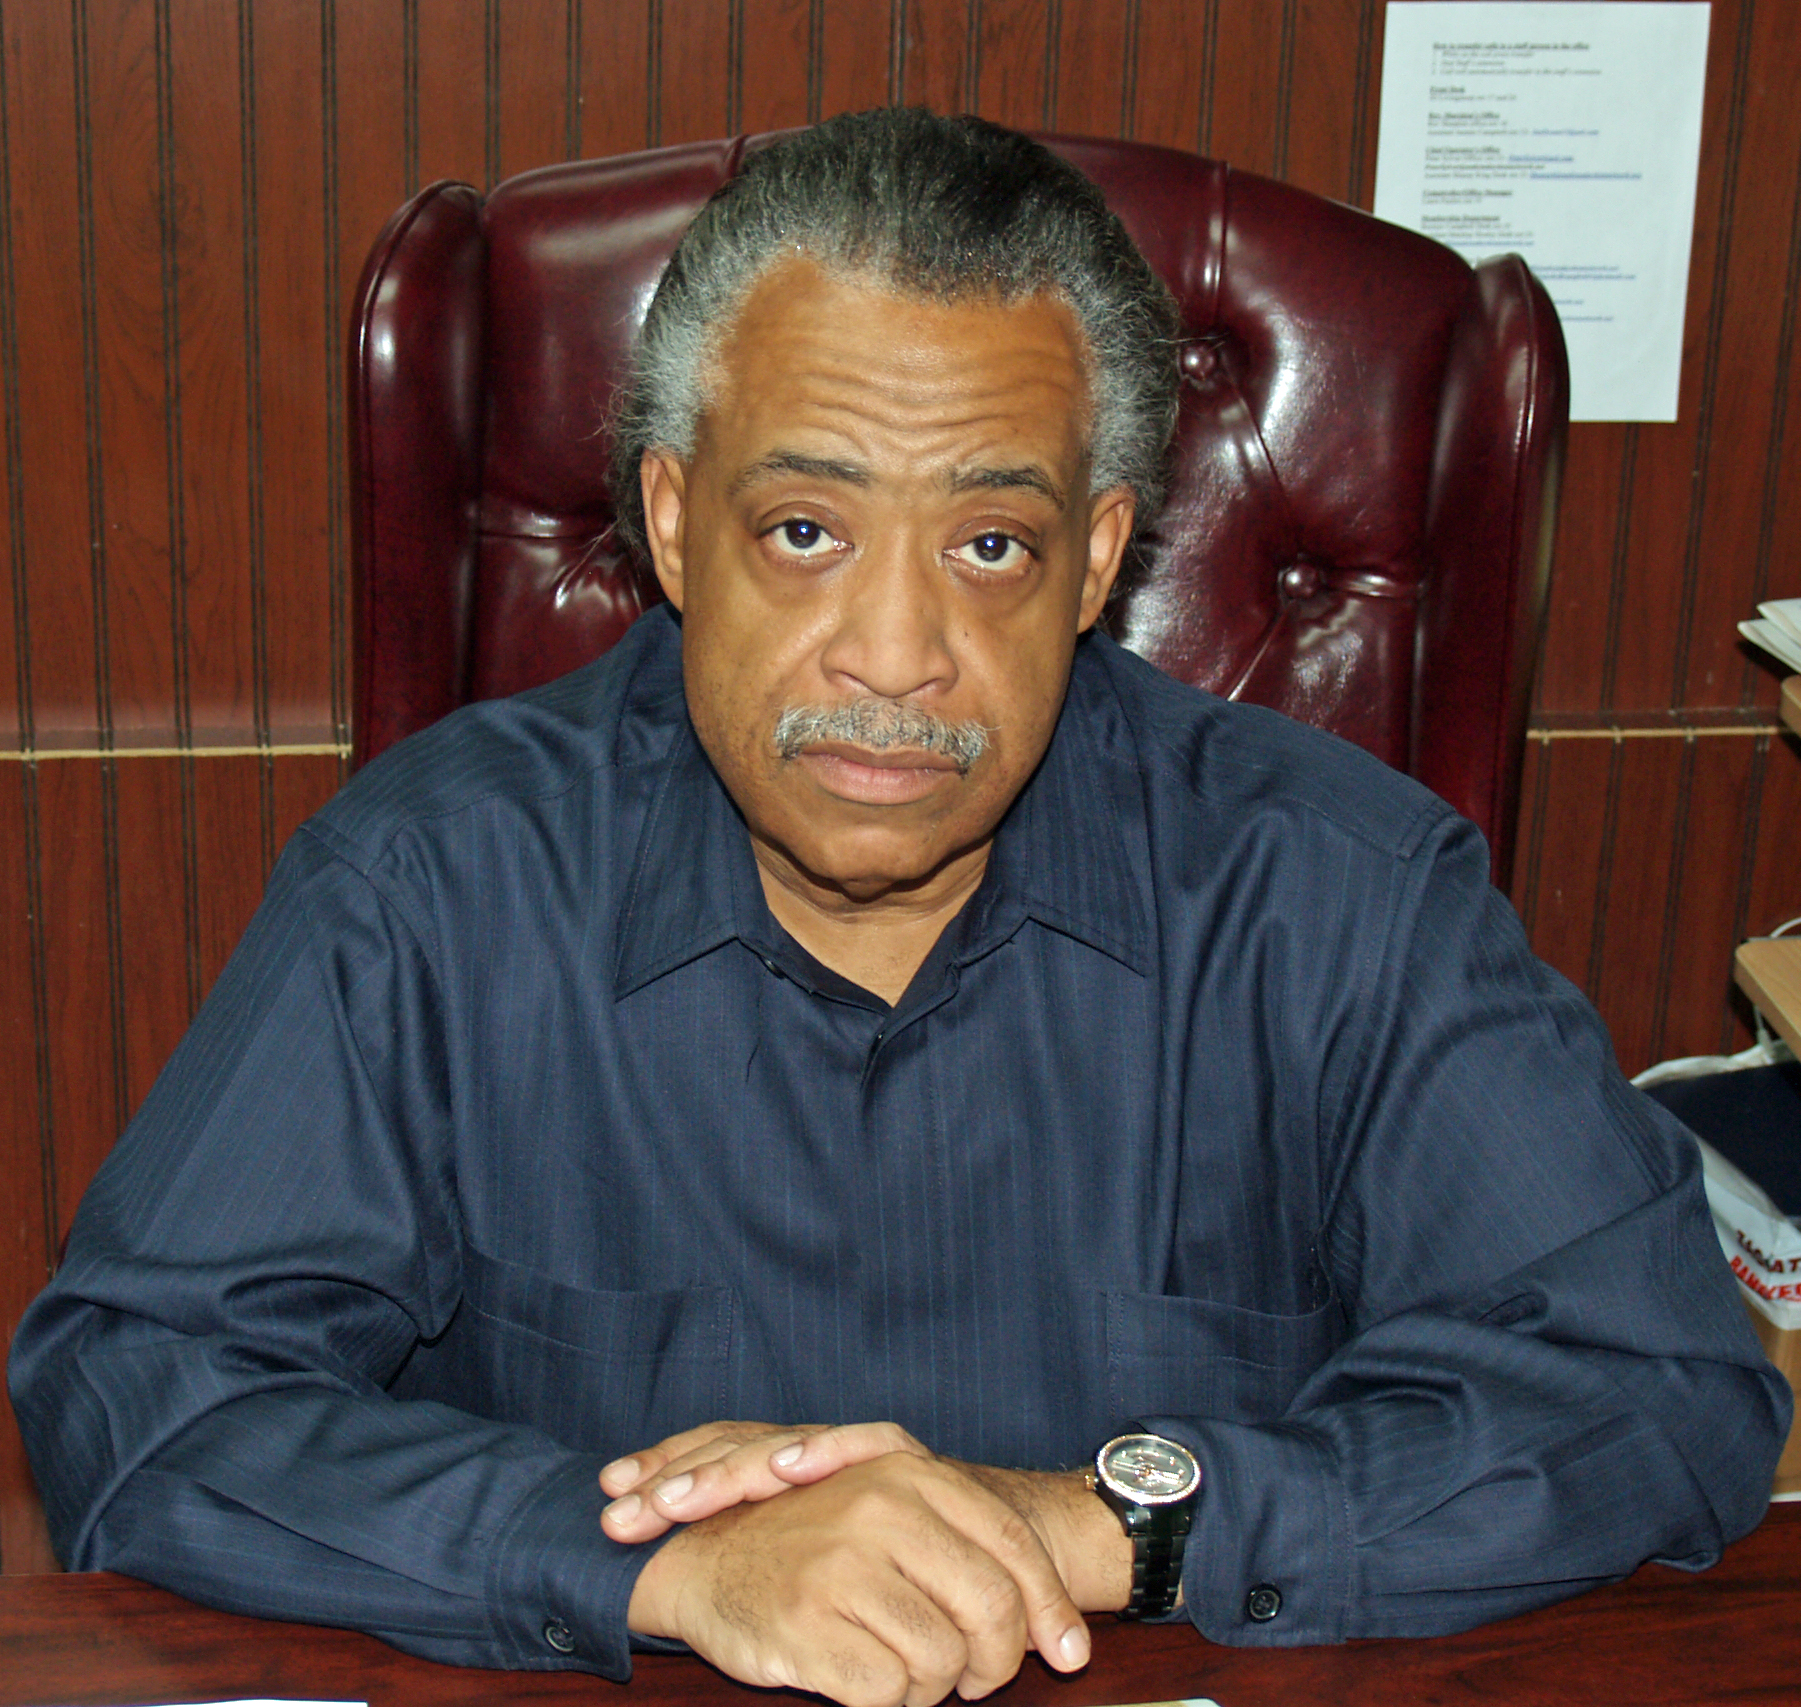 File:Al Sharpton by David Shankbone.jpg - Wikipedia, the free ...